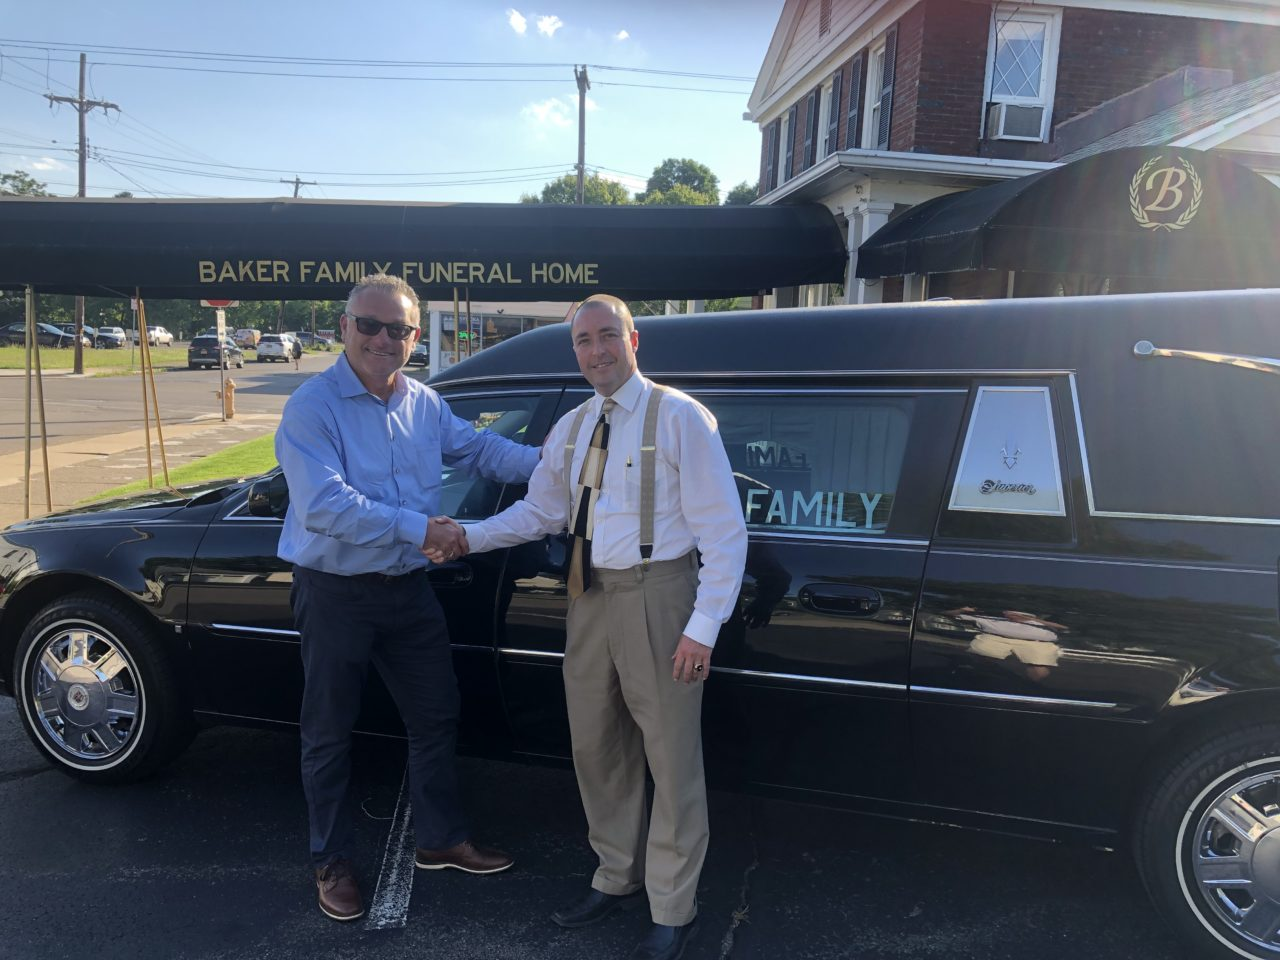 New Delivery: 2008 Cadillac Used Hearse Delivered to Baker Funeral Home in Elmira, NY